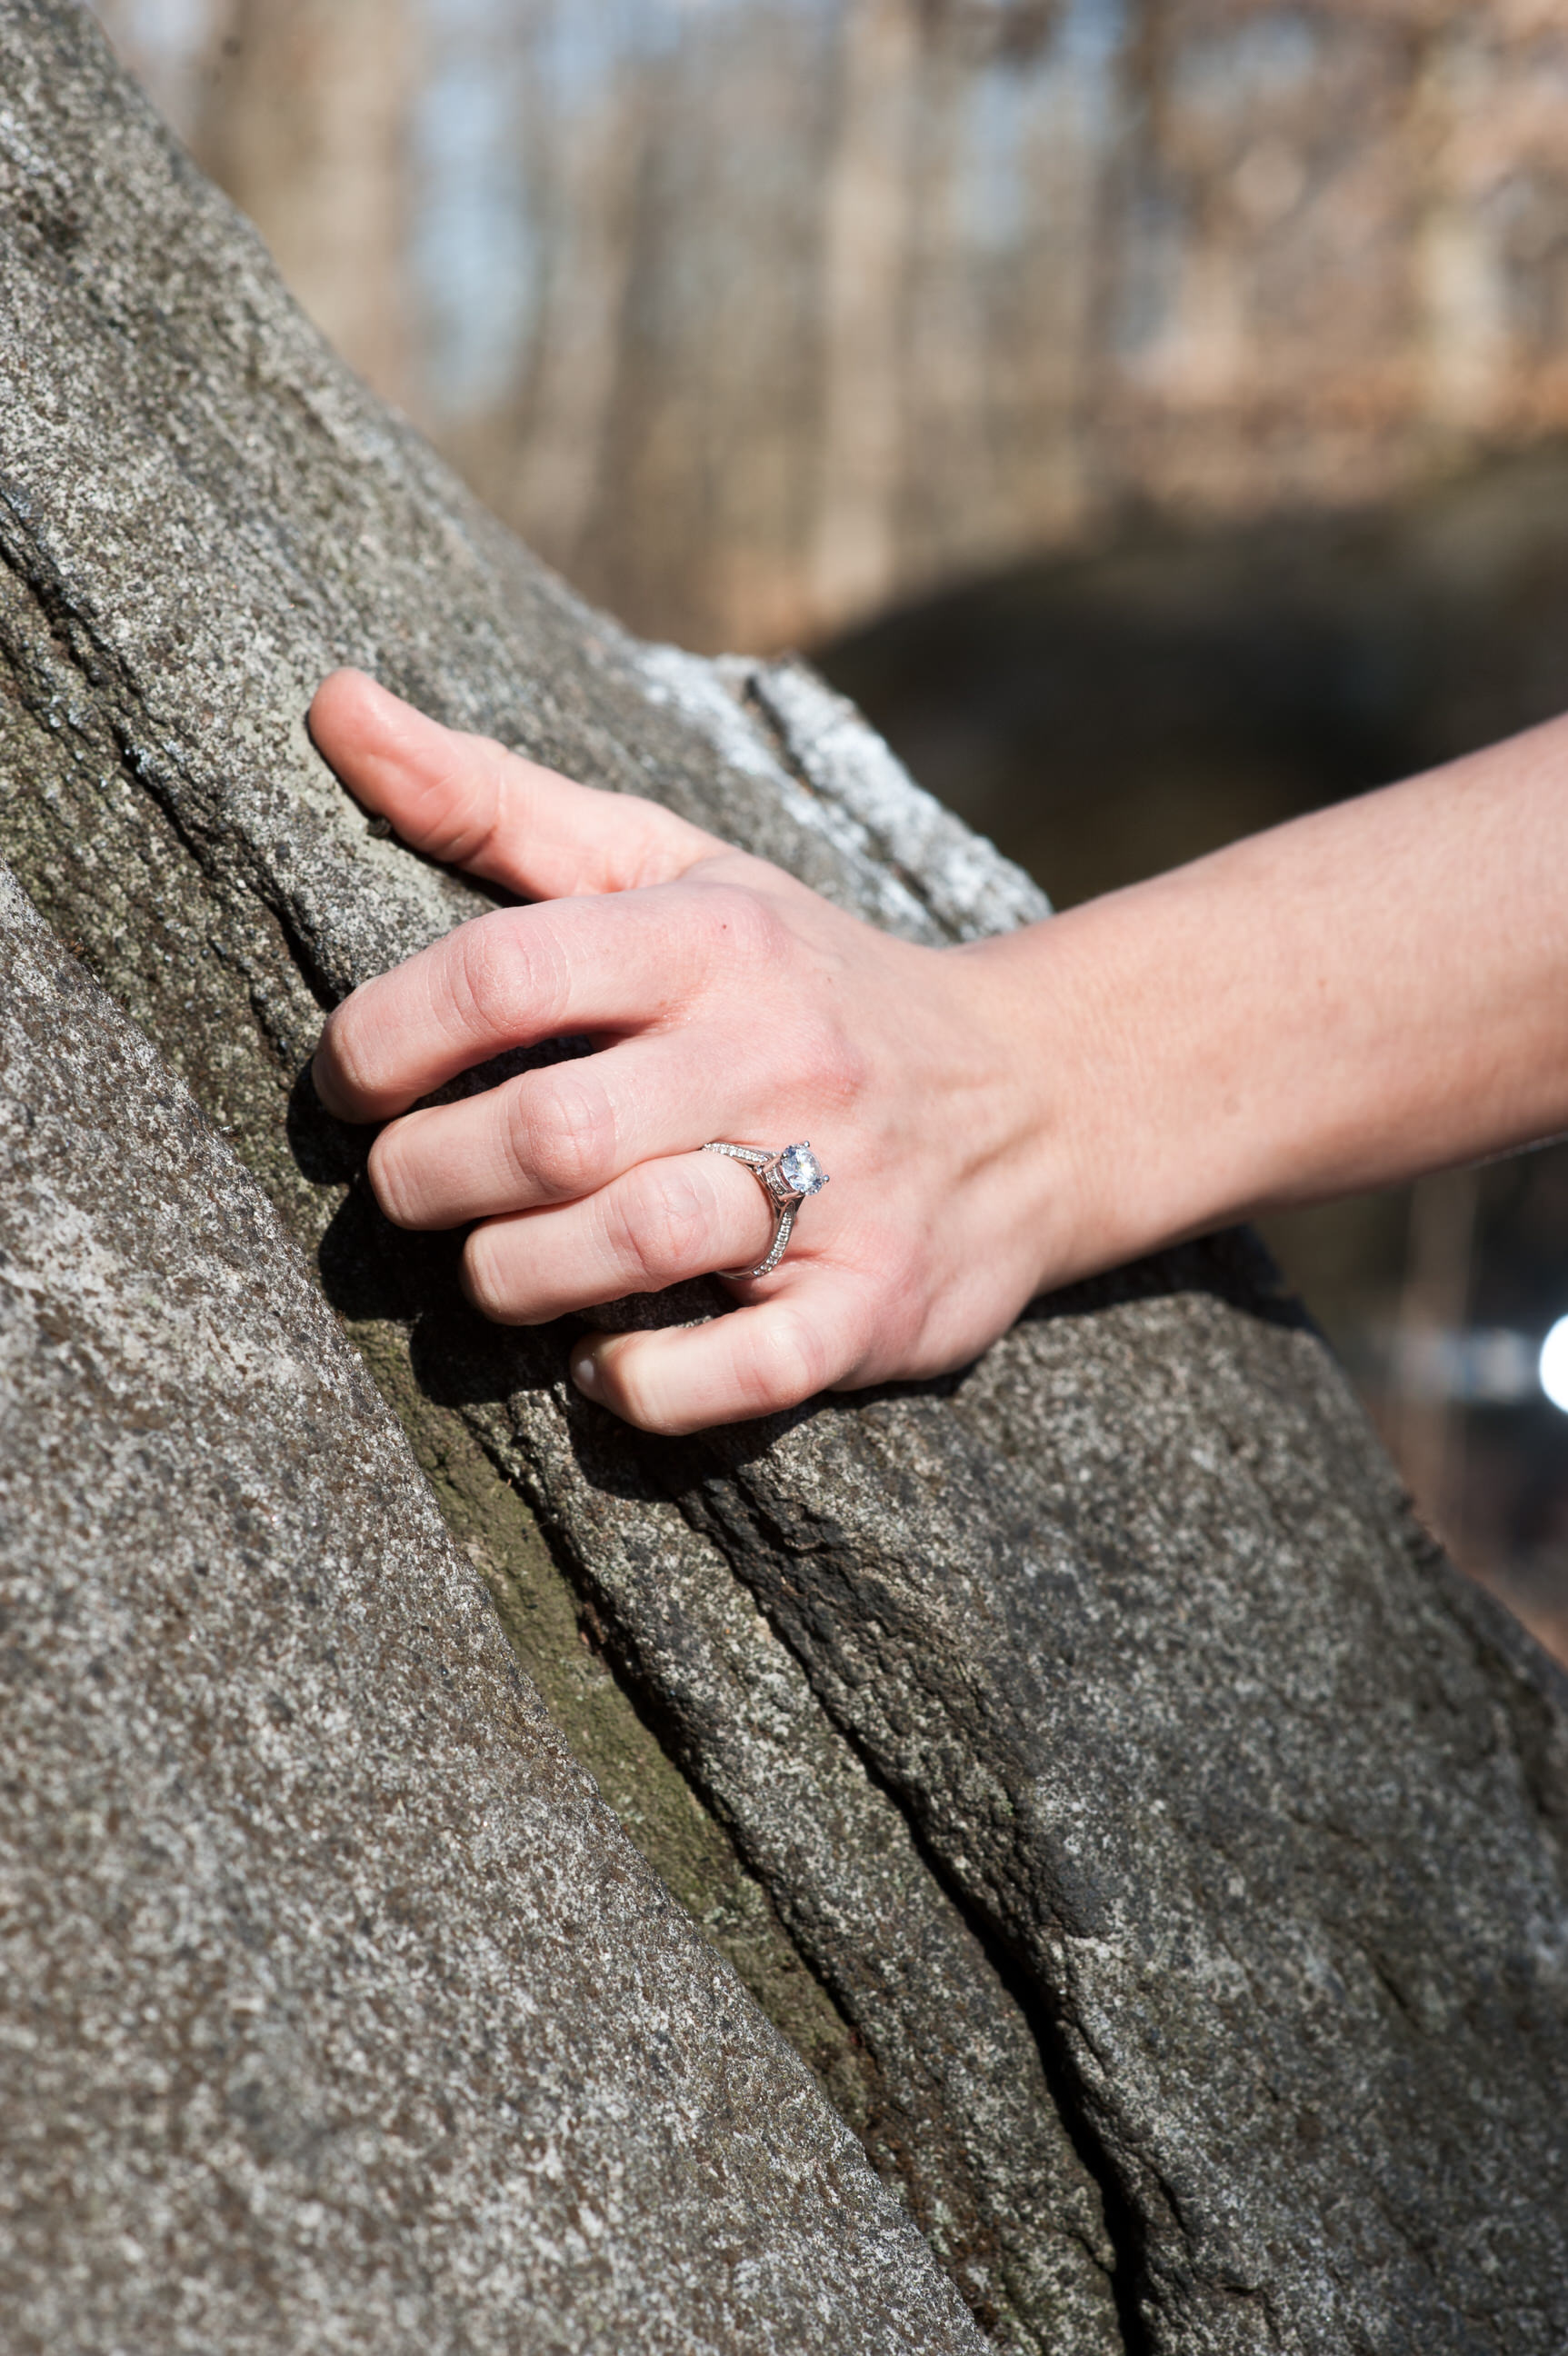 16 Mad Men Style Rock Climbing Engagement .jpg